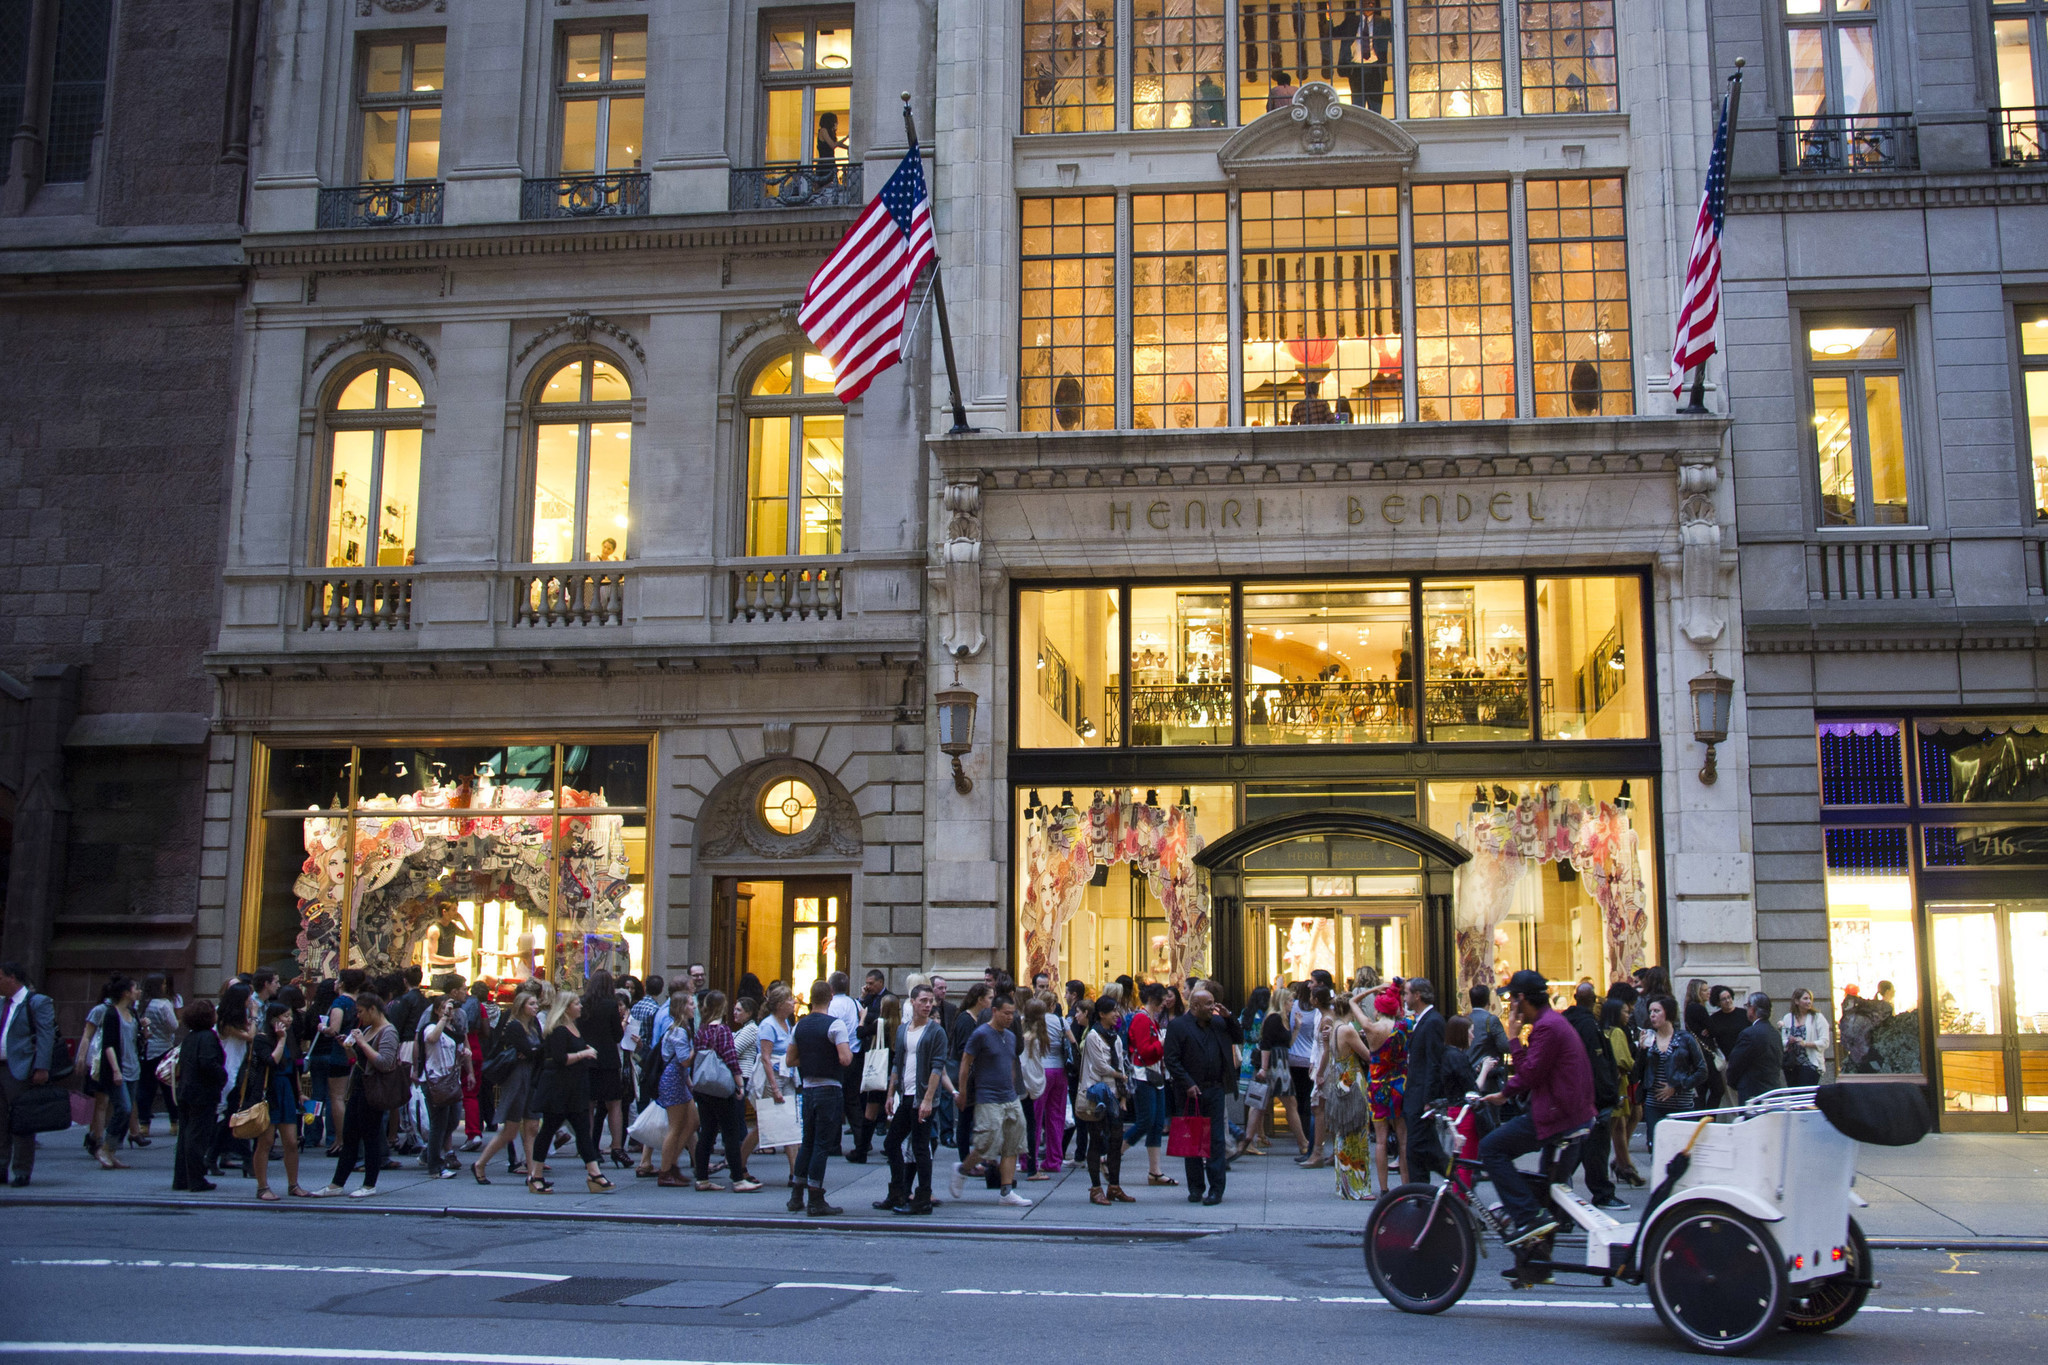 Henri Bendel to close all stores after 123 years in business